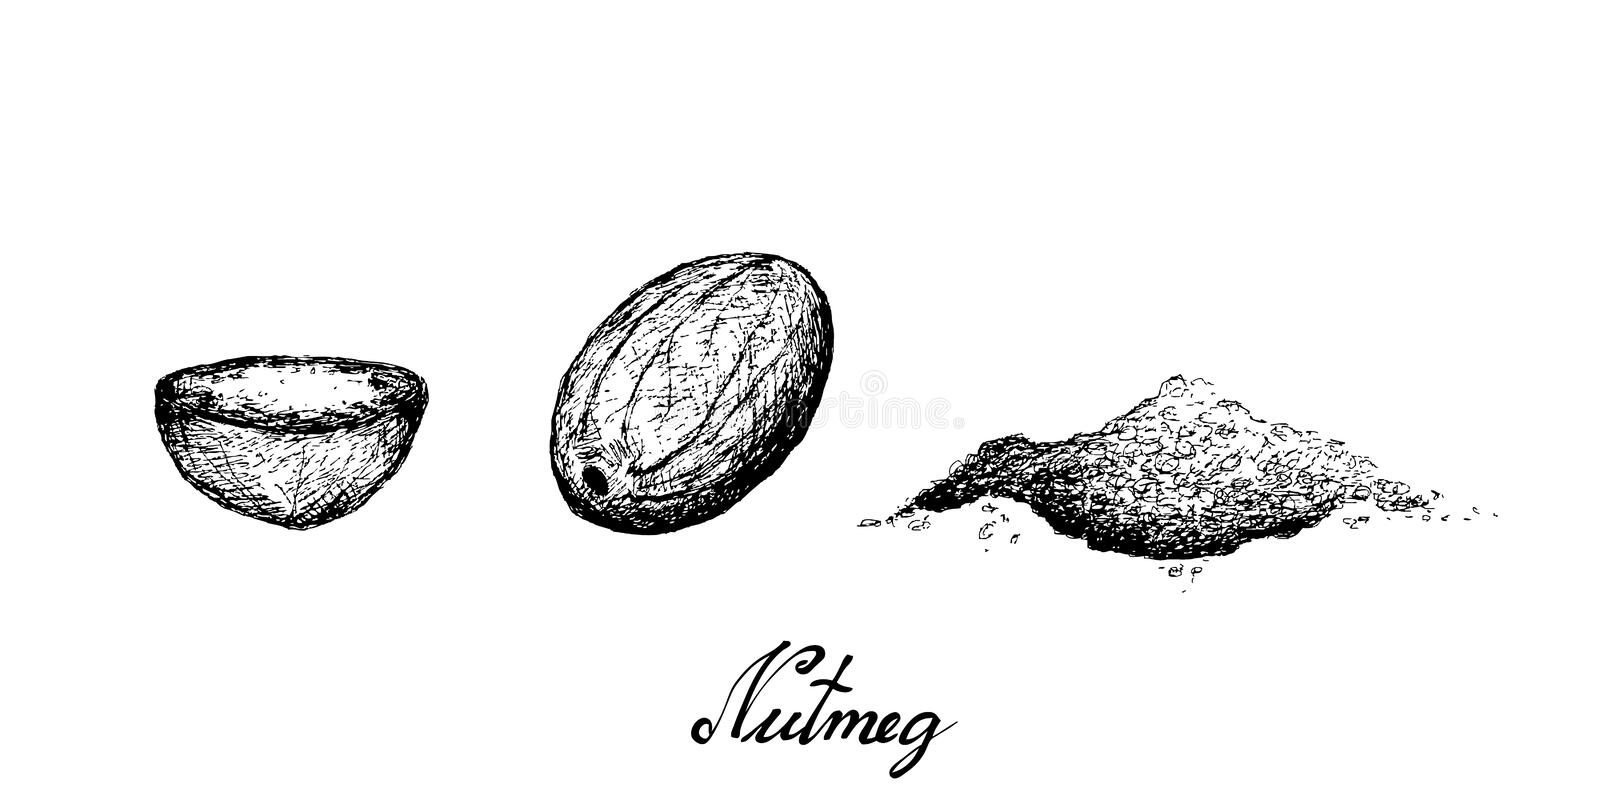 Hand Drawn of Fresh The Nutmeg Fruits. Herbal Plants, Hand Drawn Illustration of Fresh Nutmeg or Myristica Fragrans Fruits Used for Seasoning in Cooking stock illustration